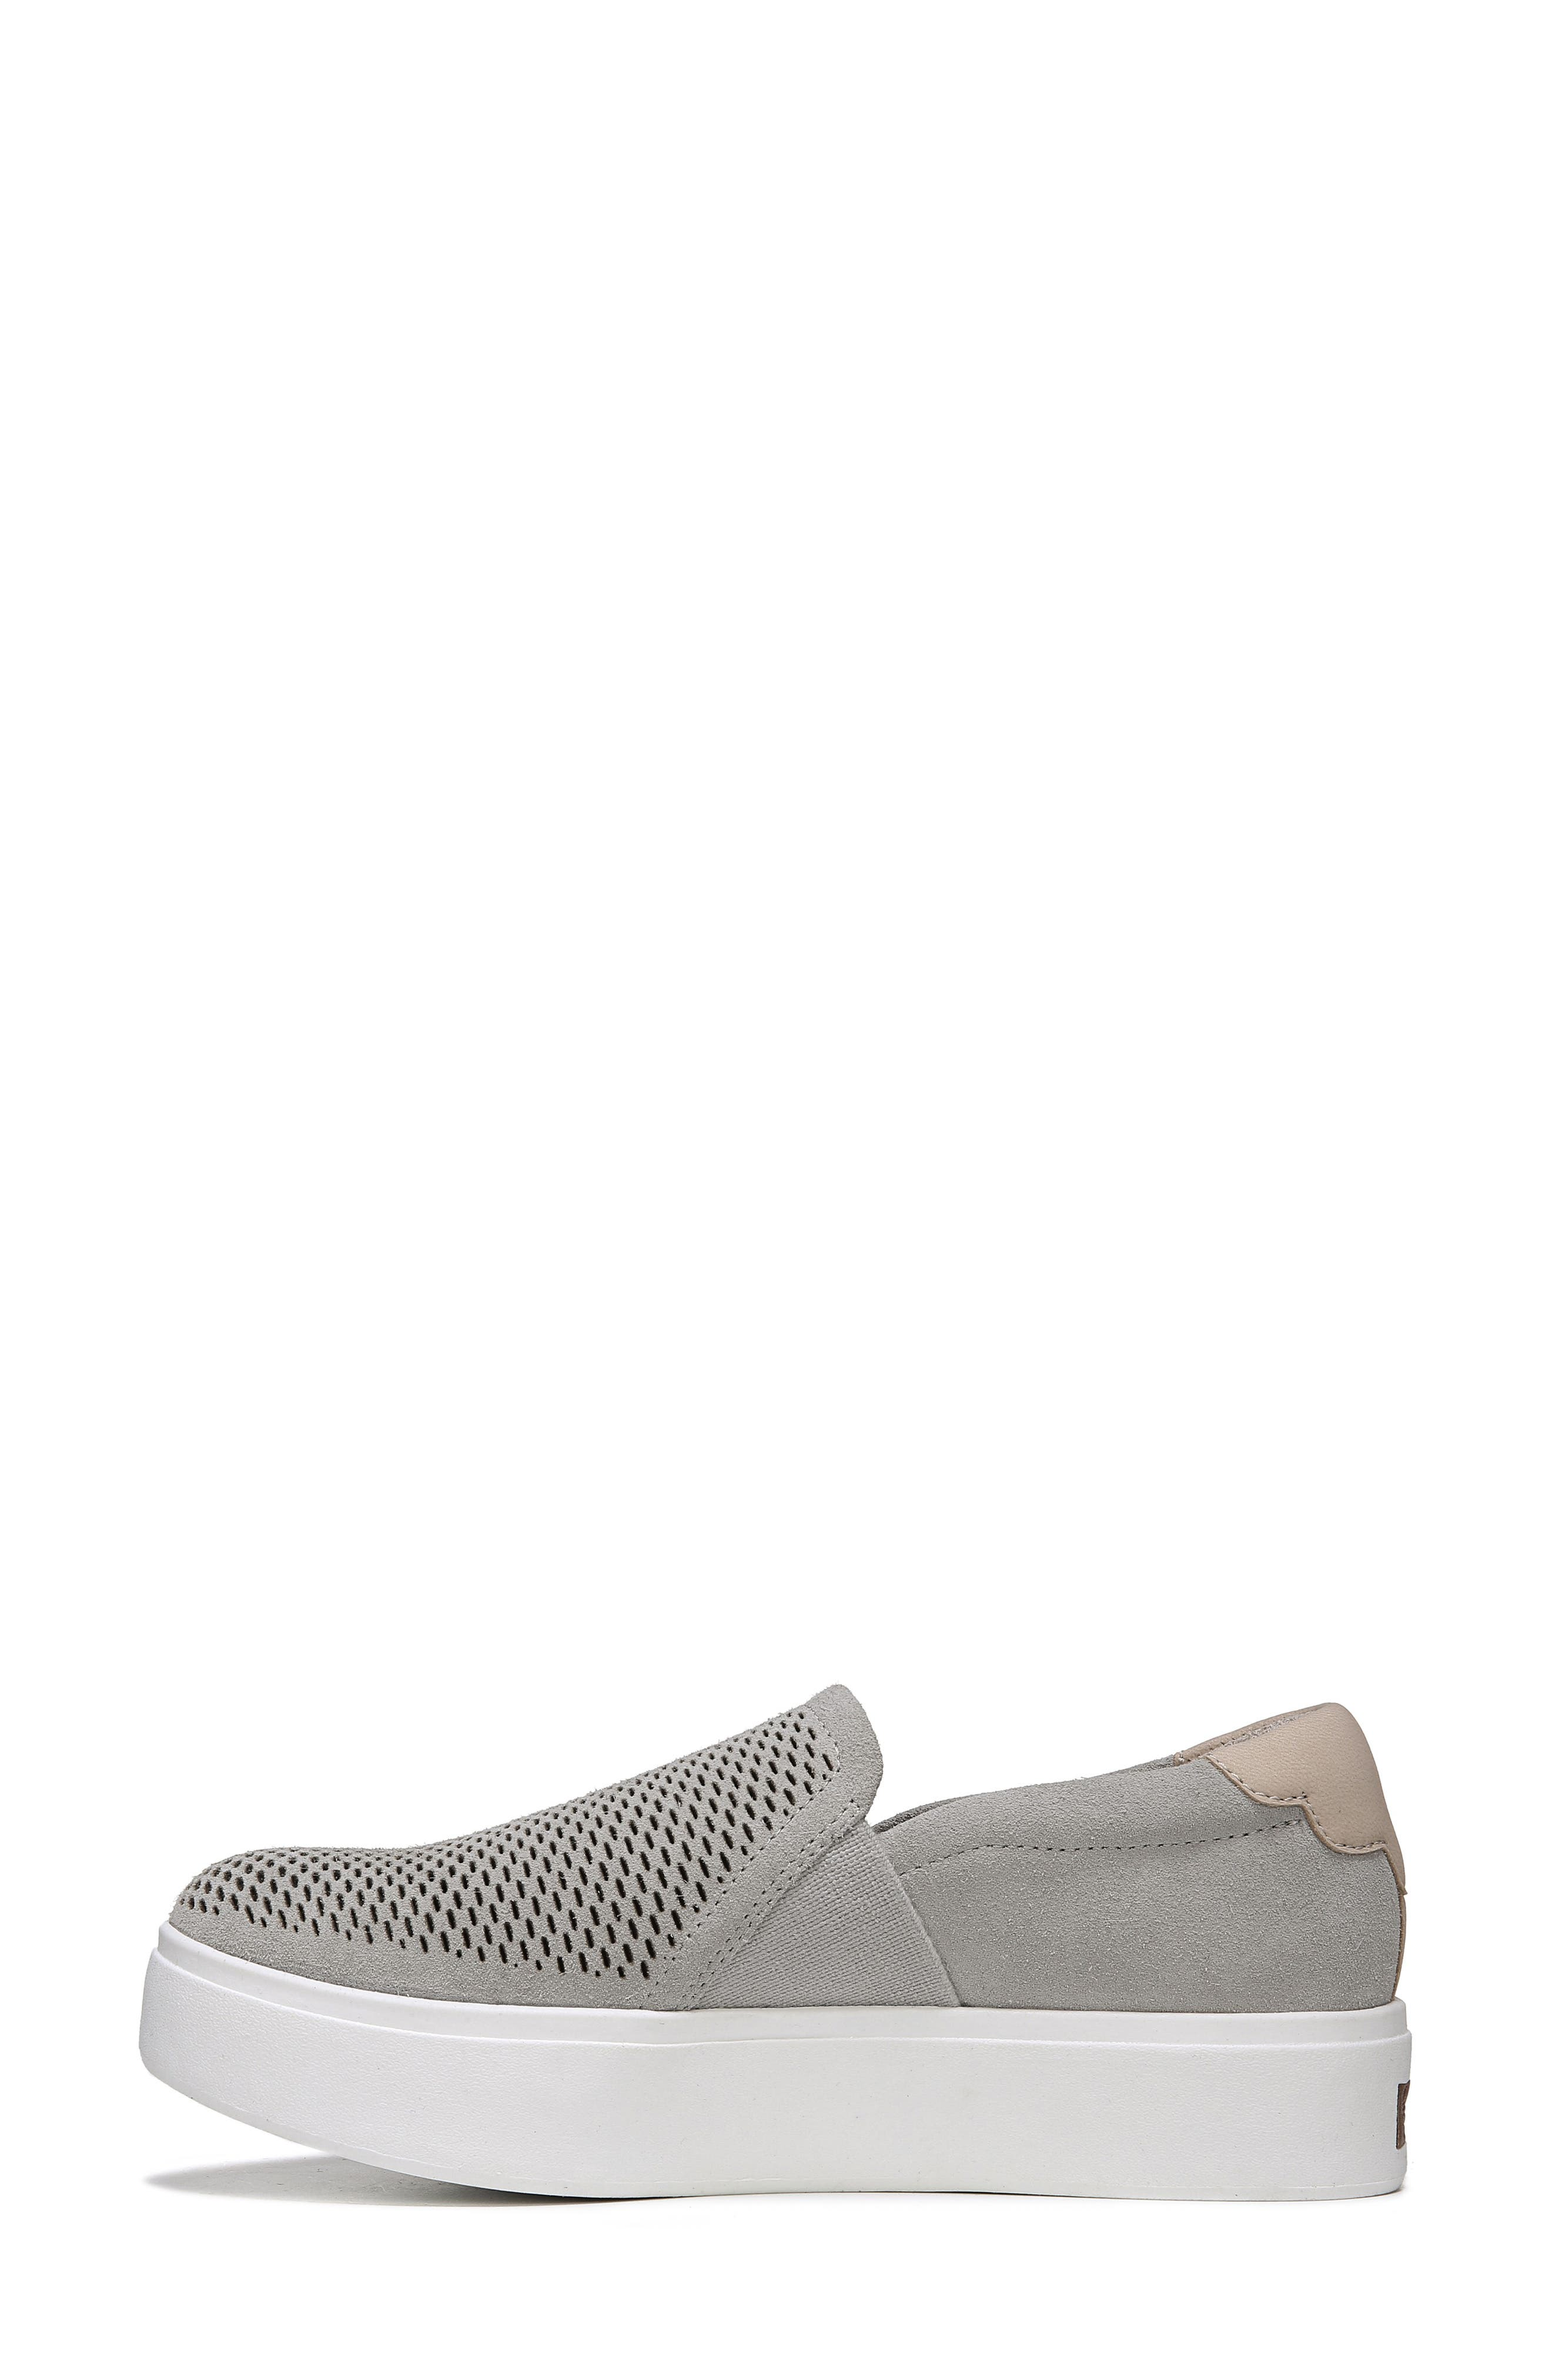 Abbot Lux Sneaker,                             Alternate thumbnail 9, color,                             GREY LEATHER